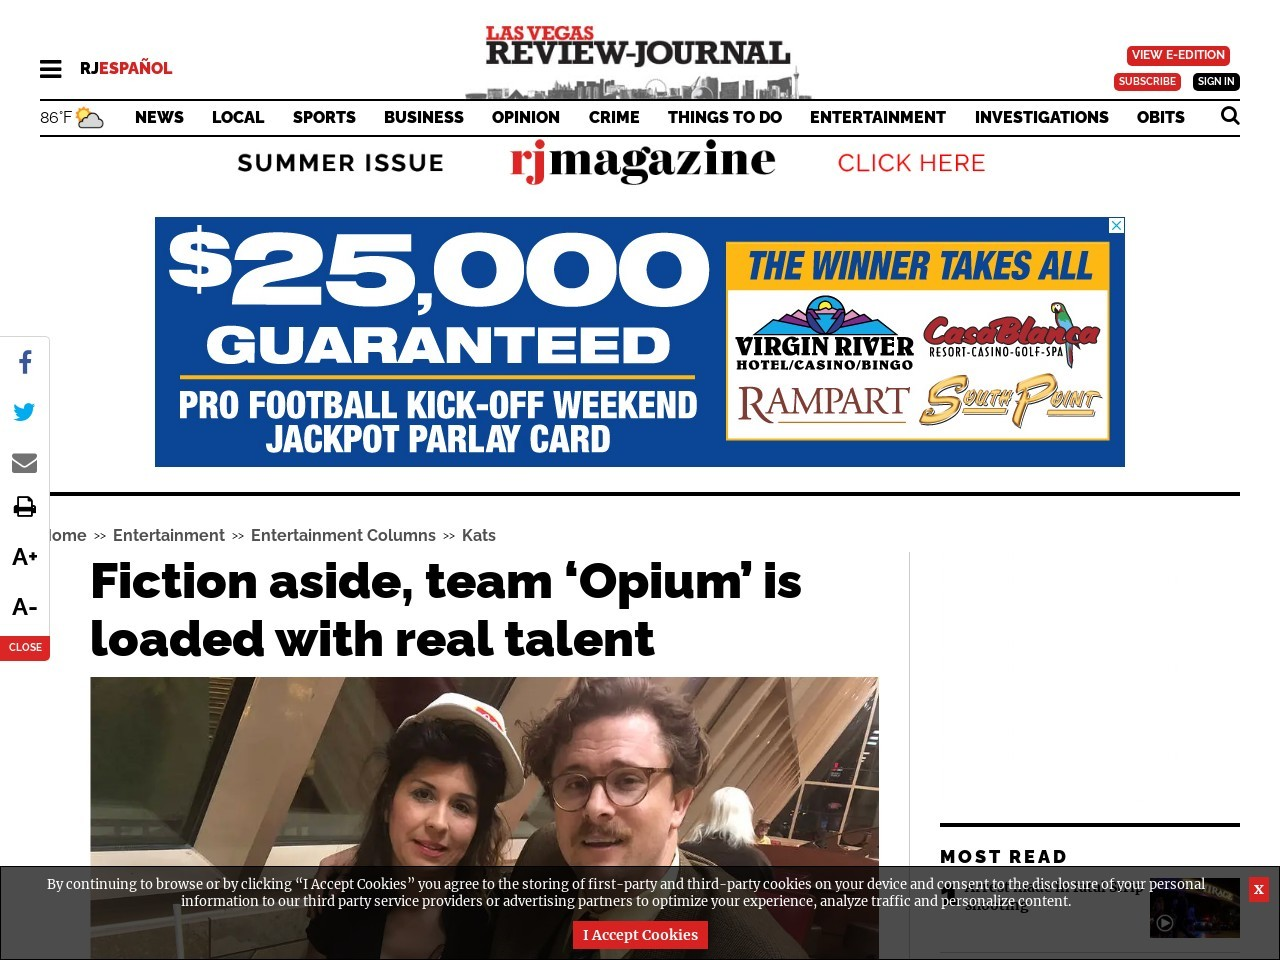 Fiction aside, team 'Opium' is loaded with real talent